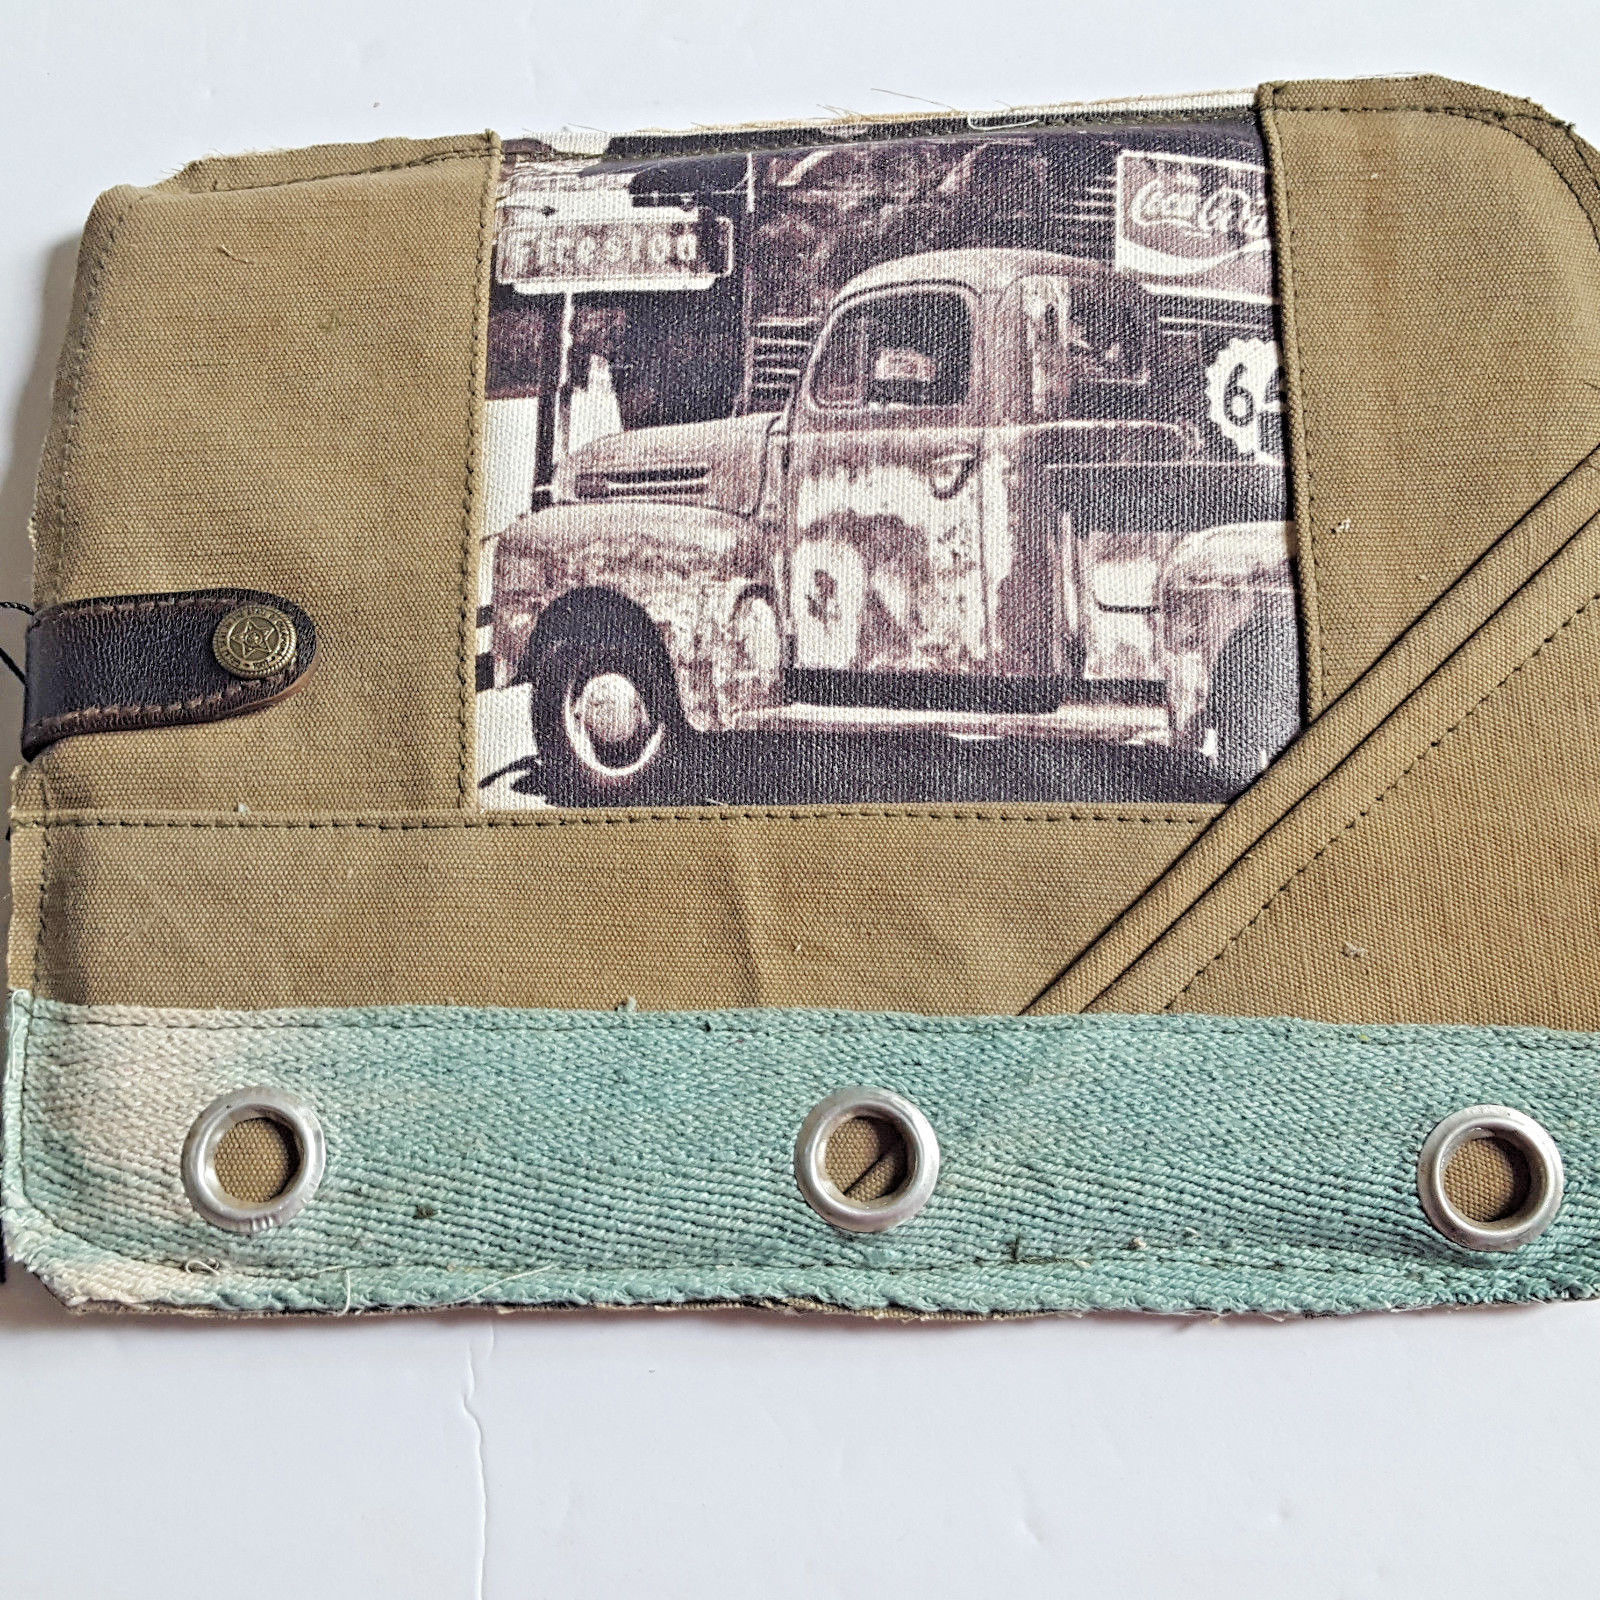 Primary image for Antique Truck iPAD Tablet Sleeve Bag Recycled Canvas Vintage Addiction Laptop